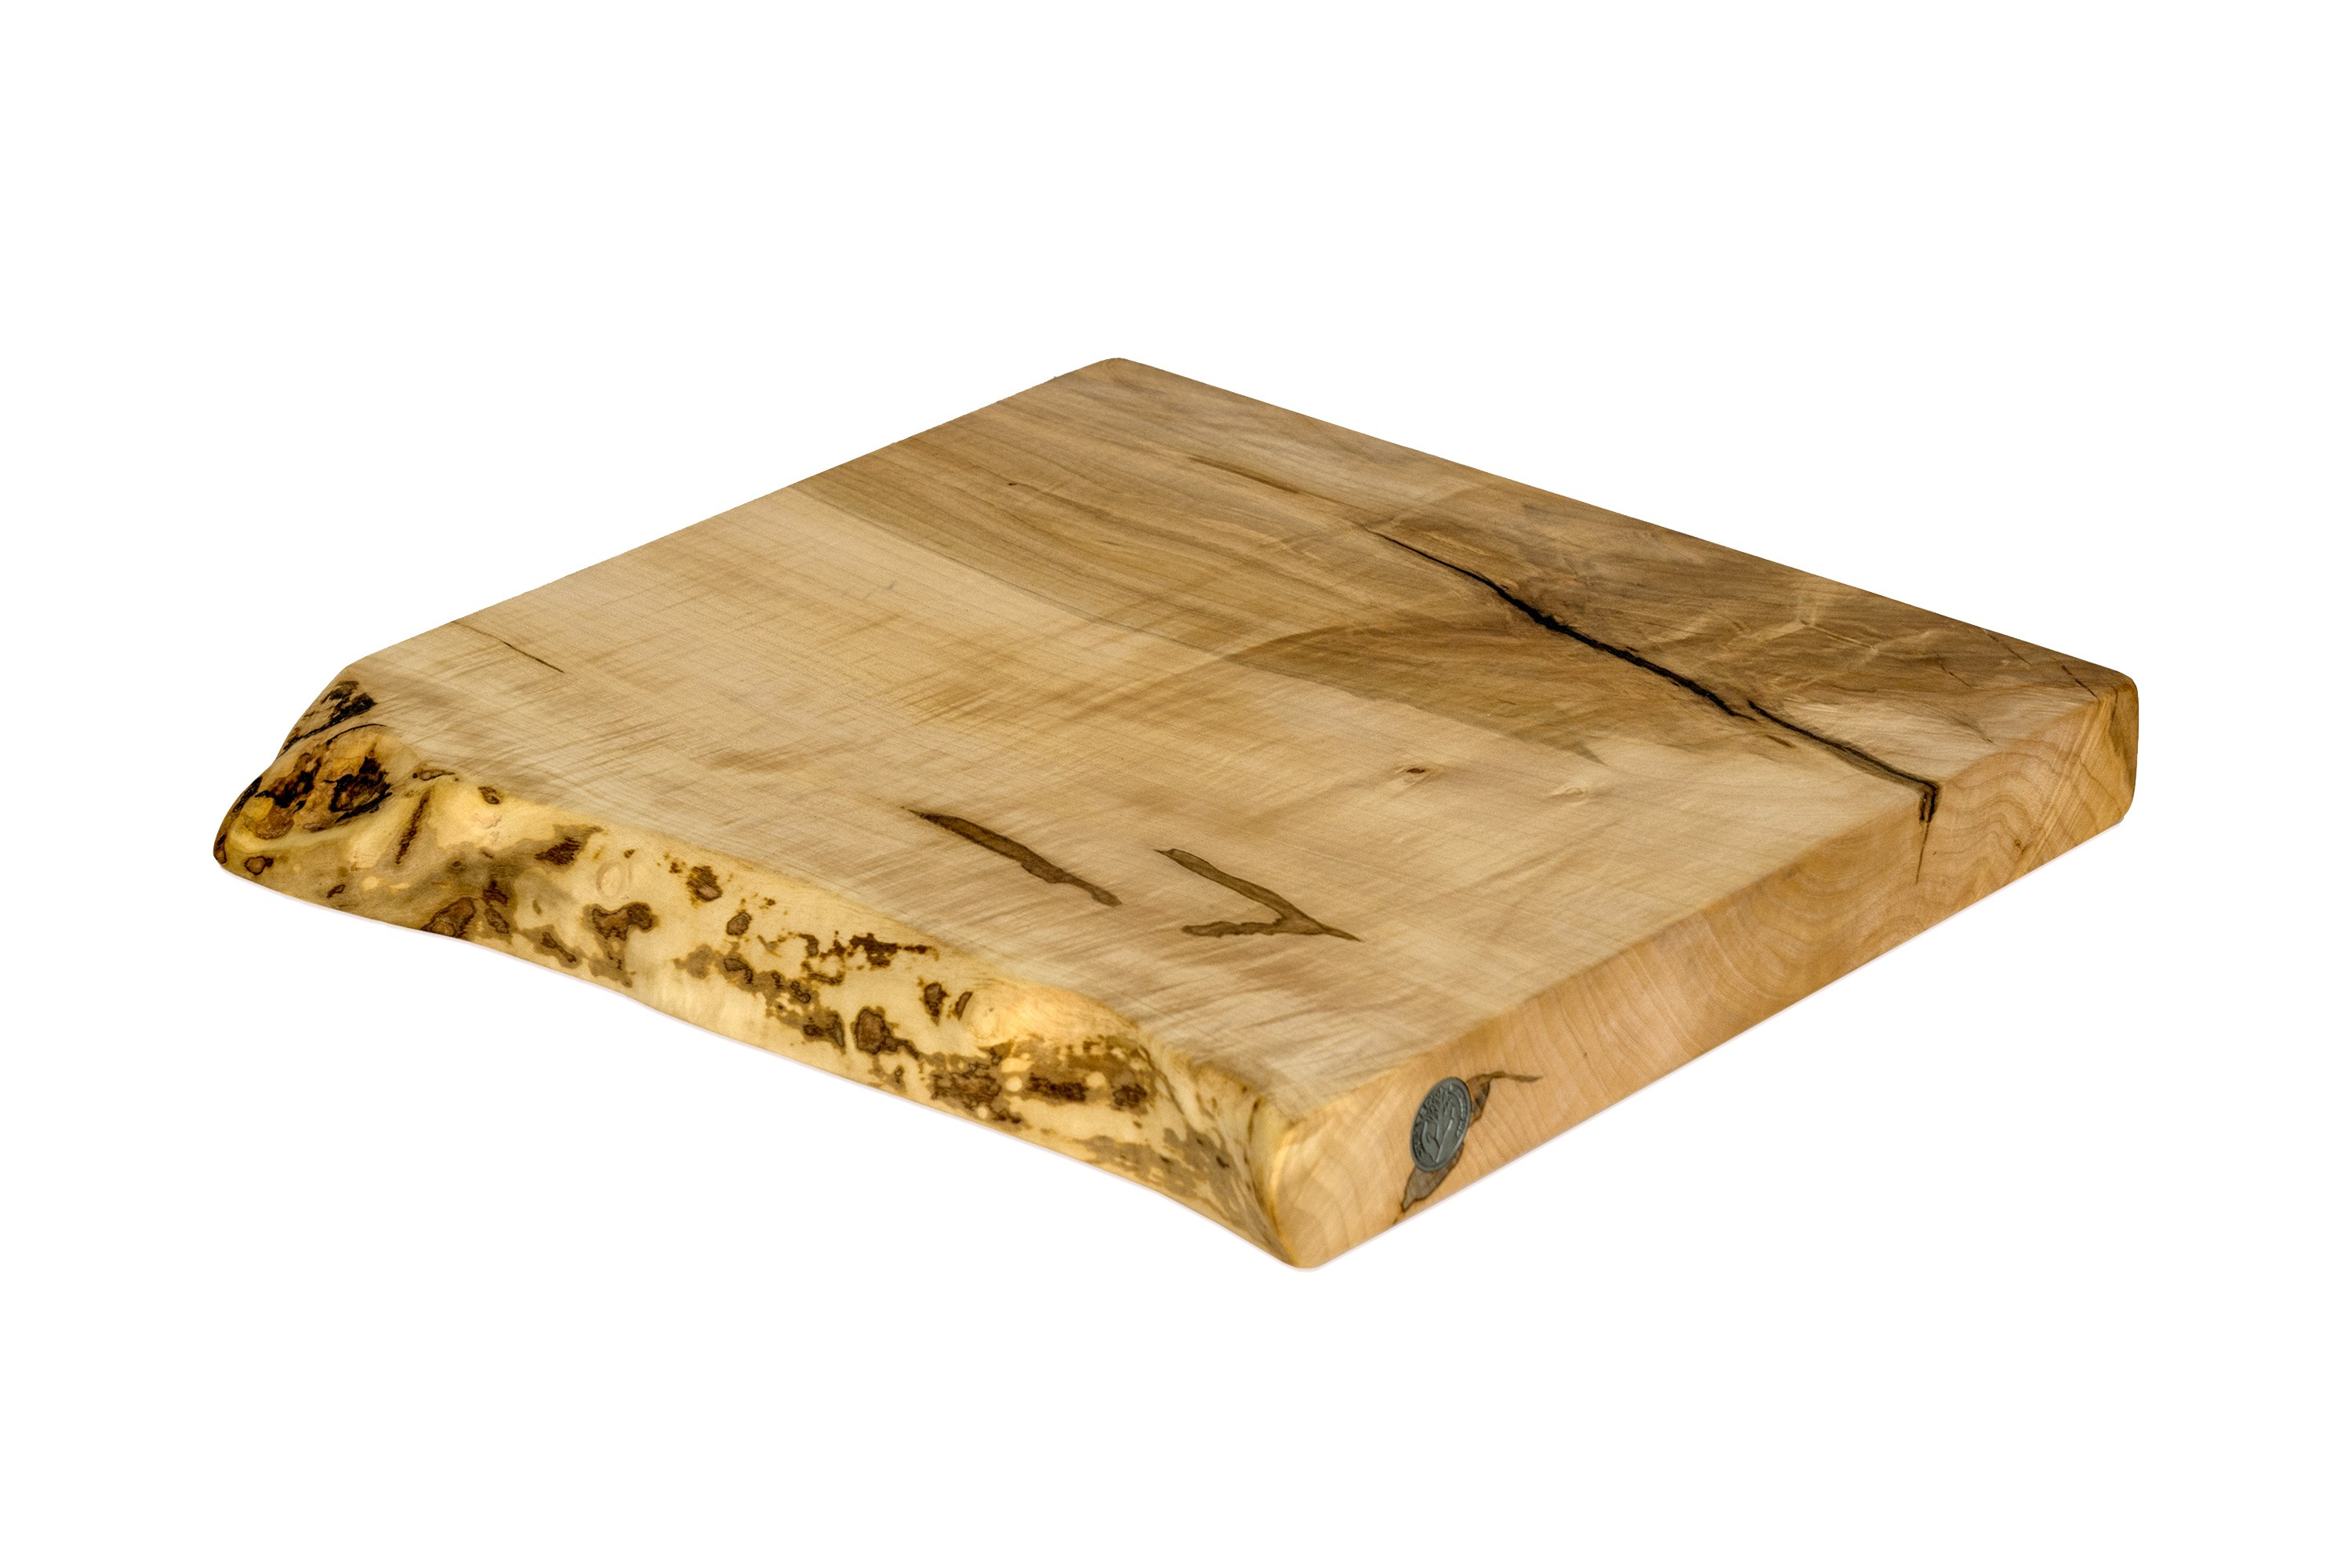 Live Edge Maple Cutting Board #107- 15.5